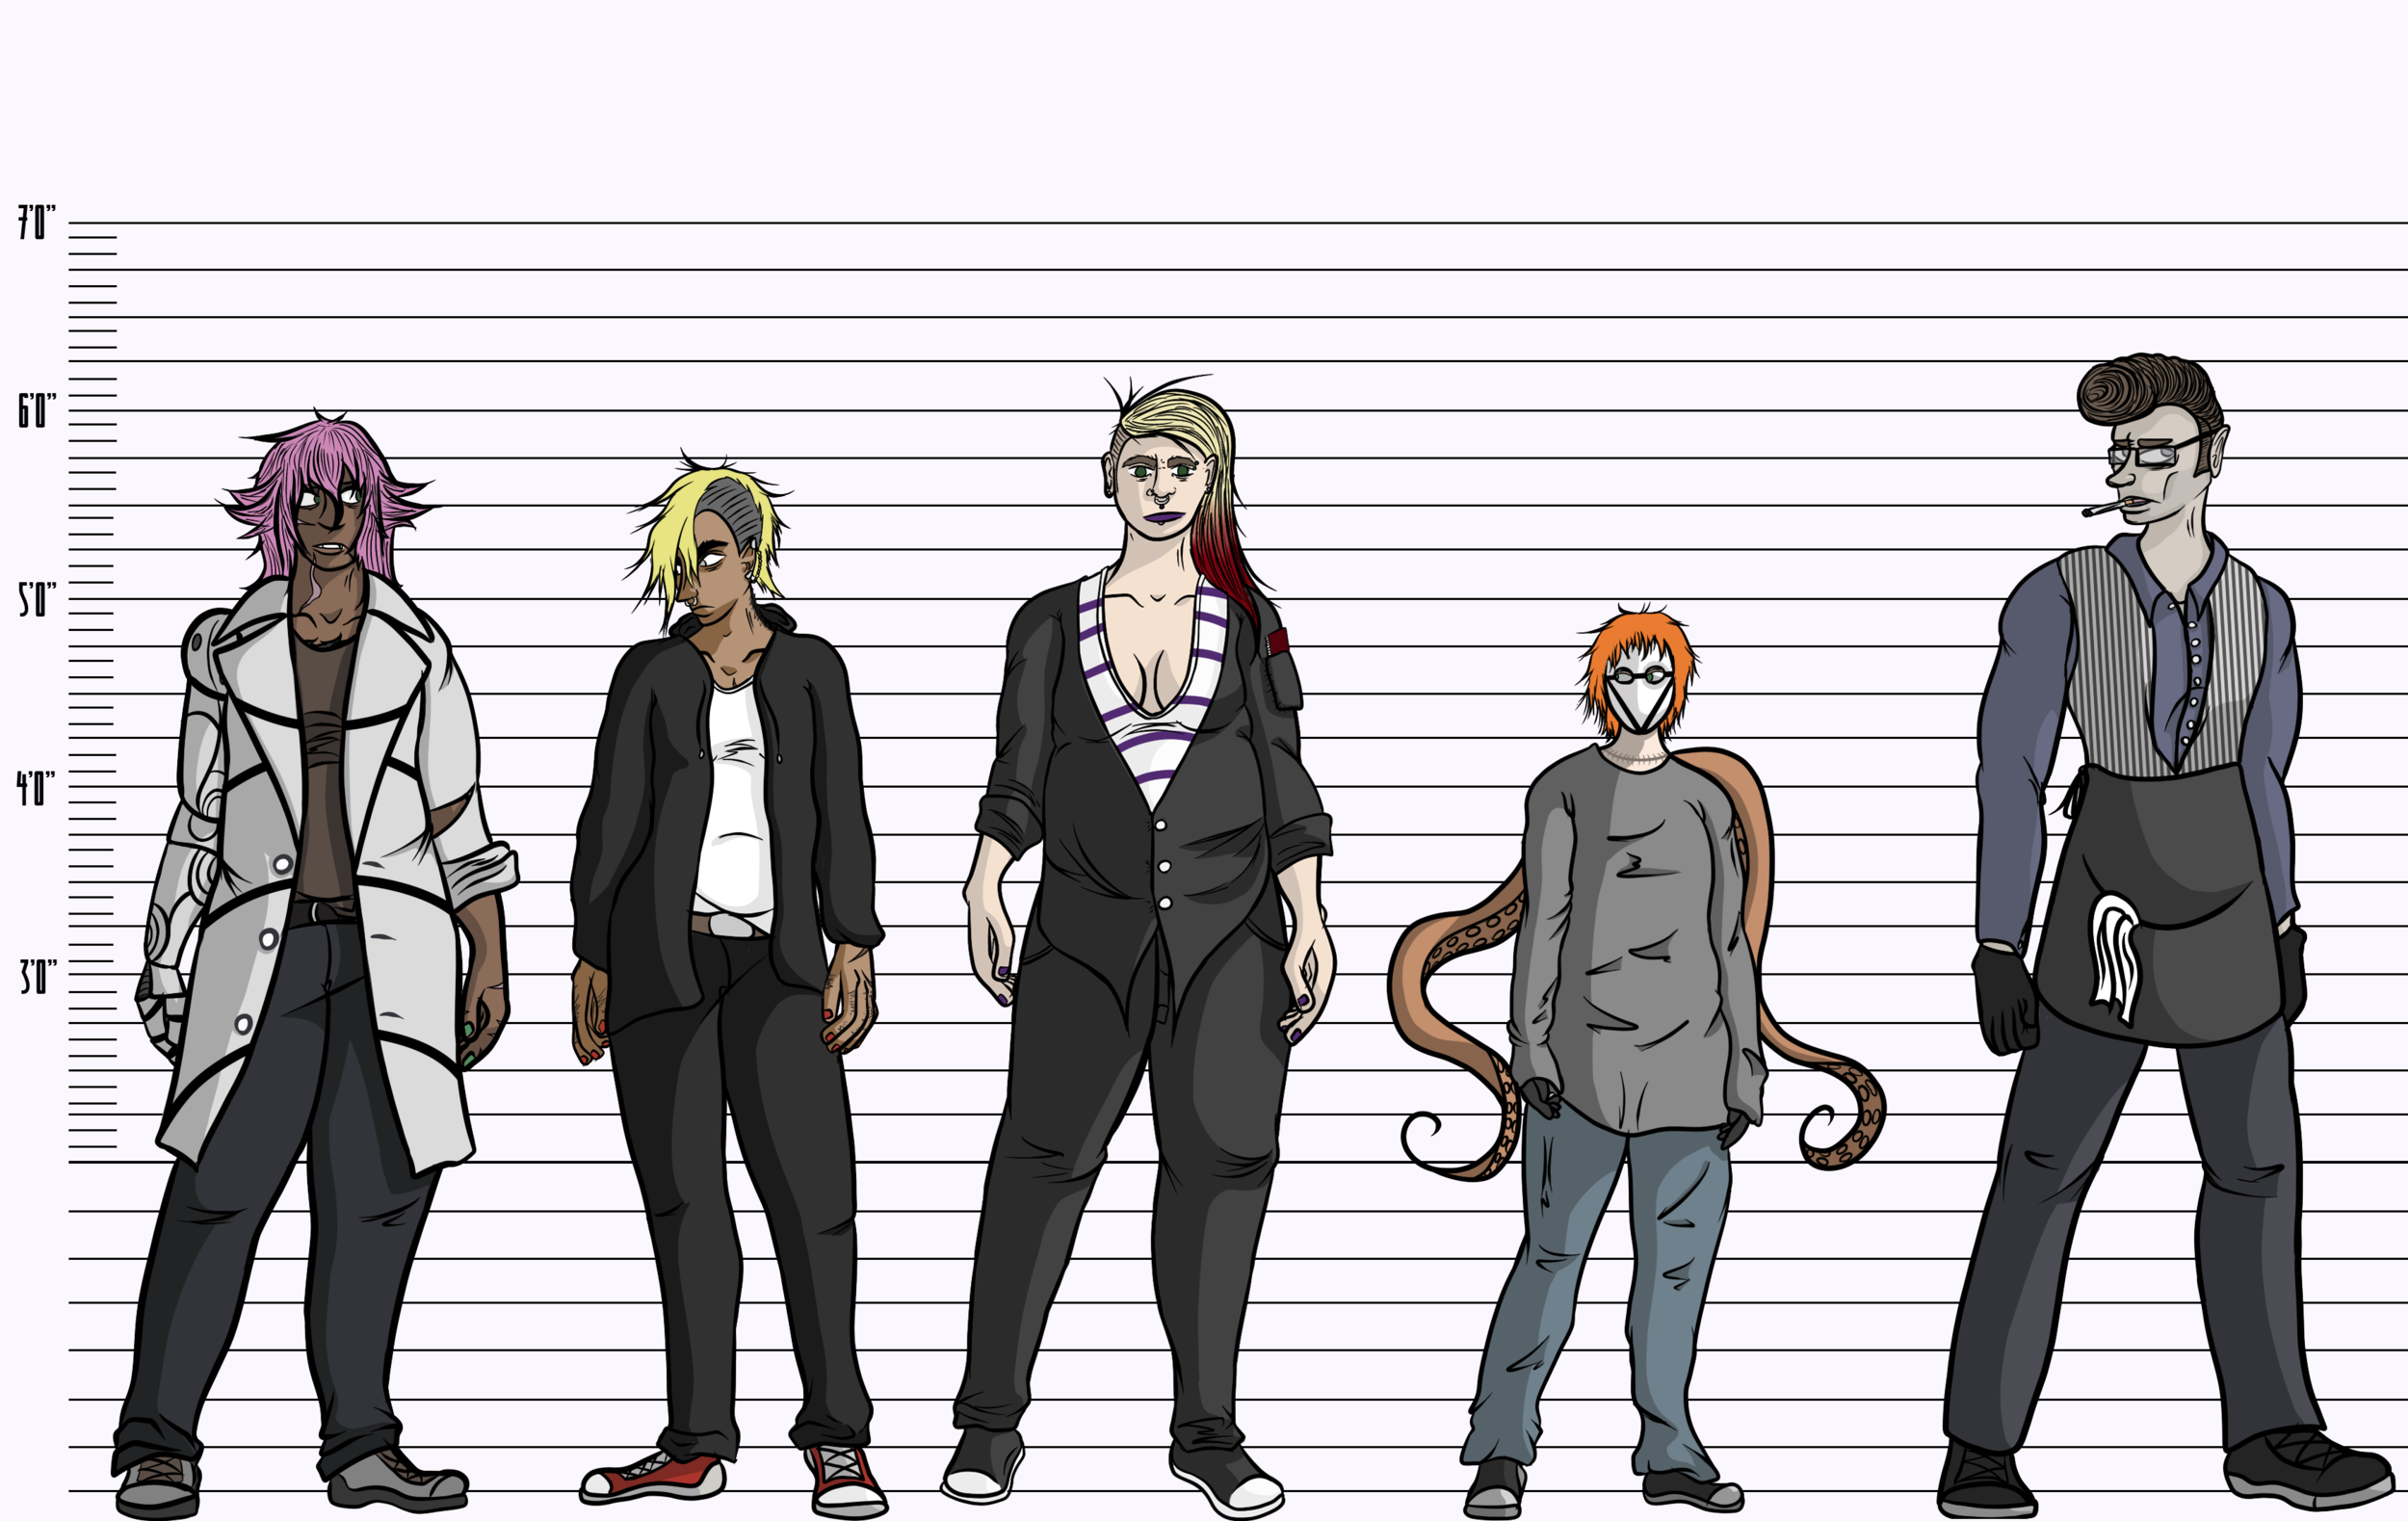 For the hell of it, here's all their heights compared to each other.